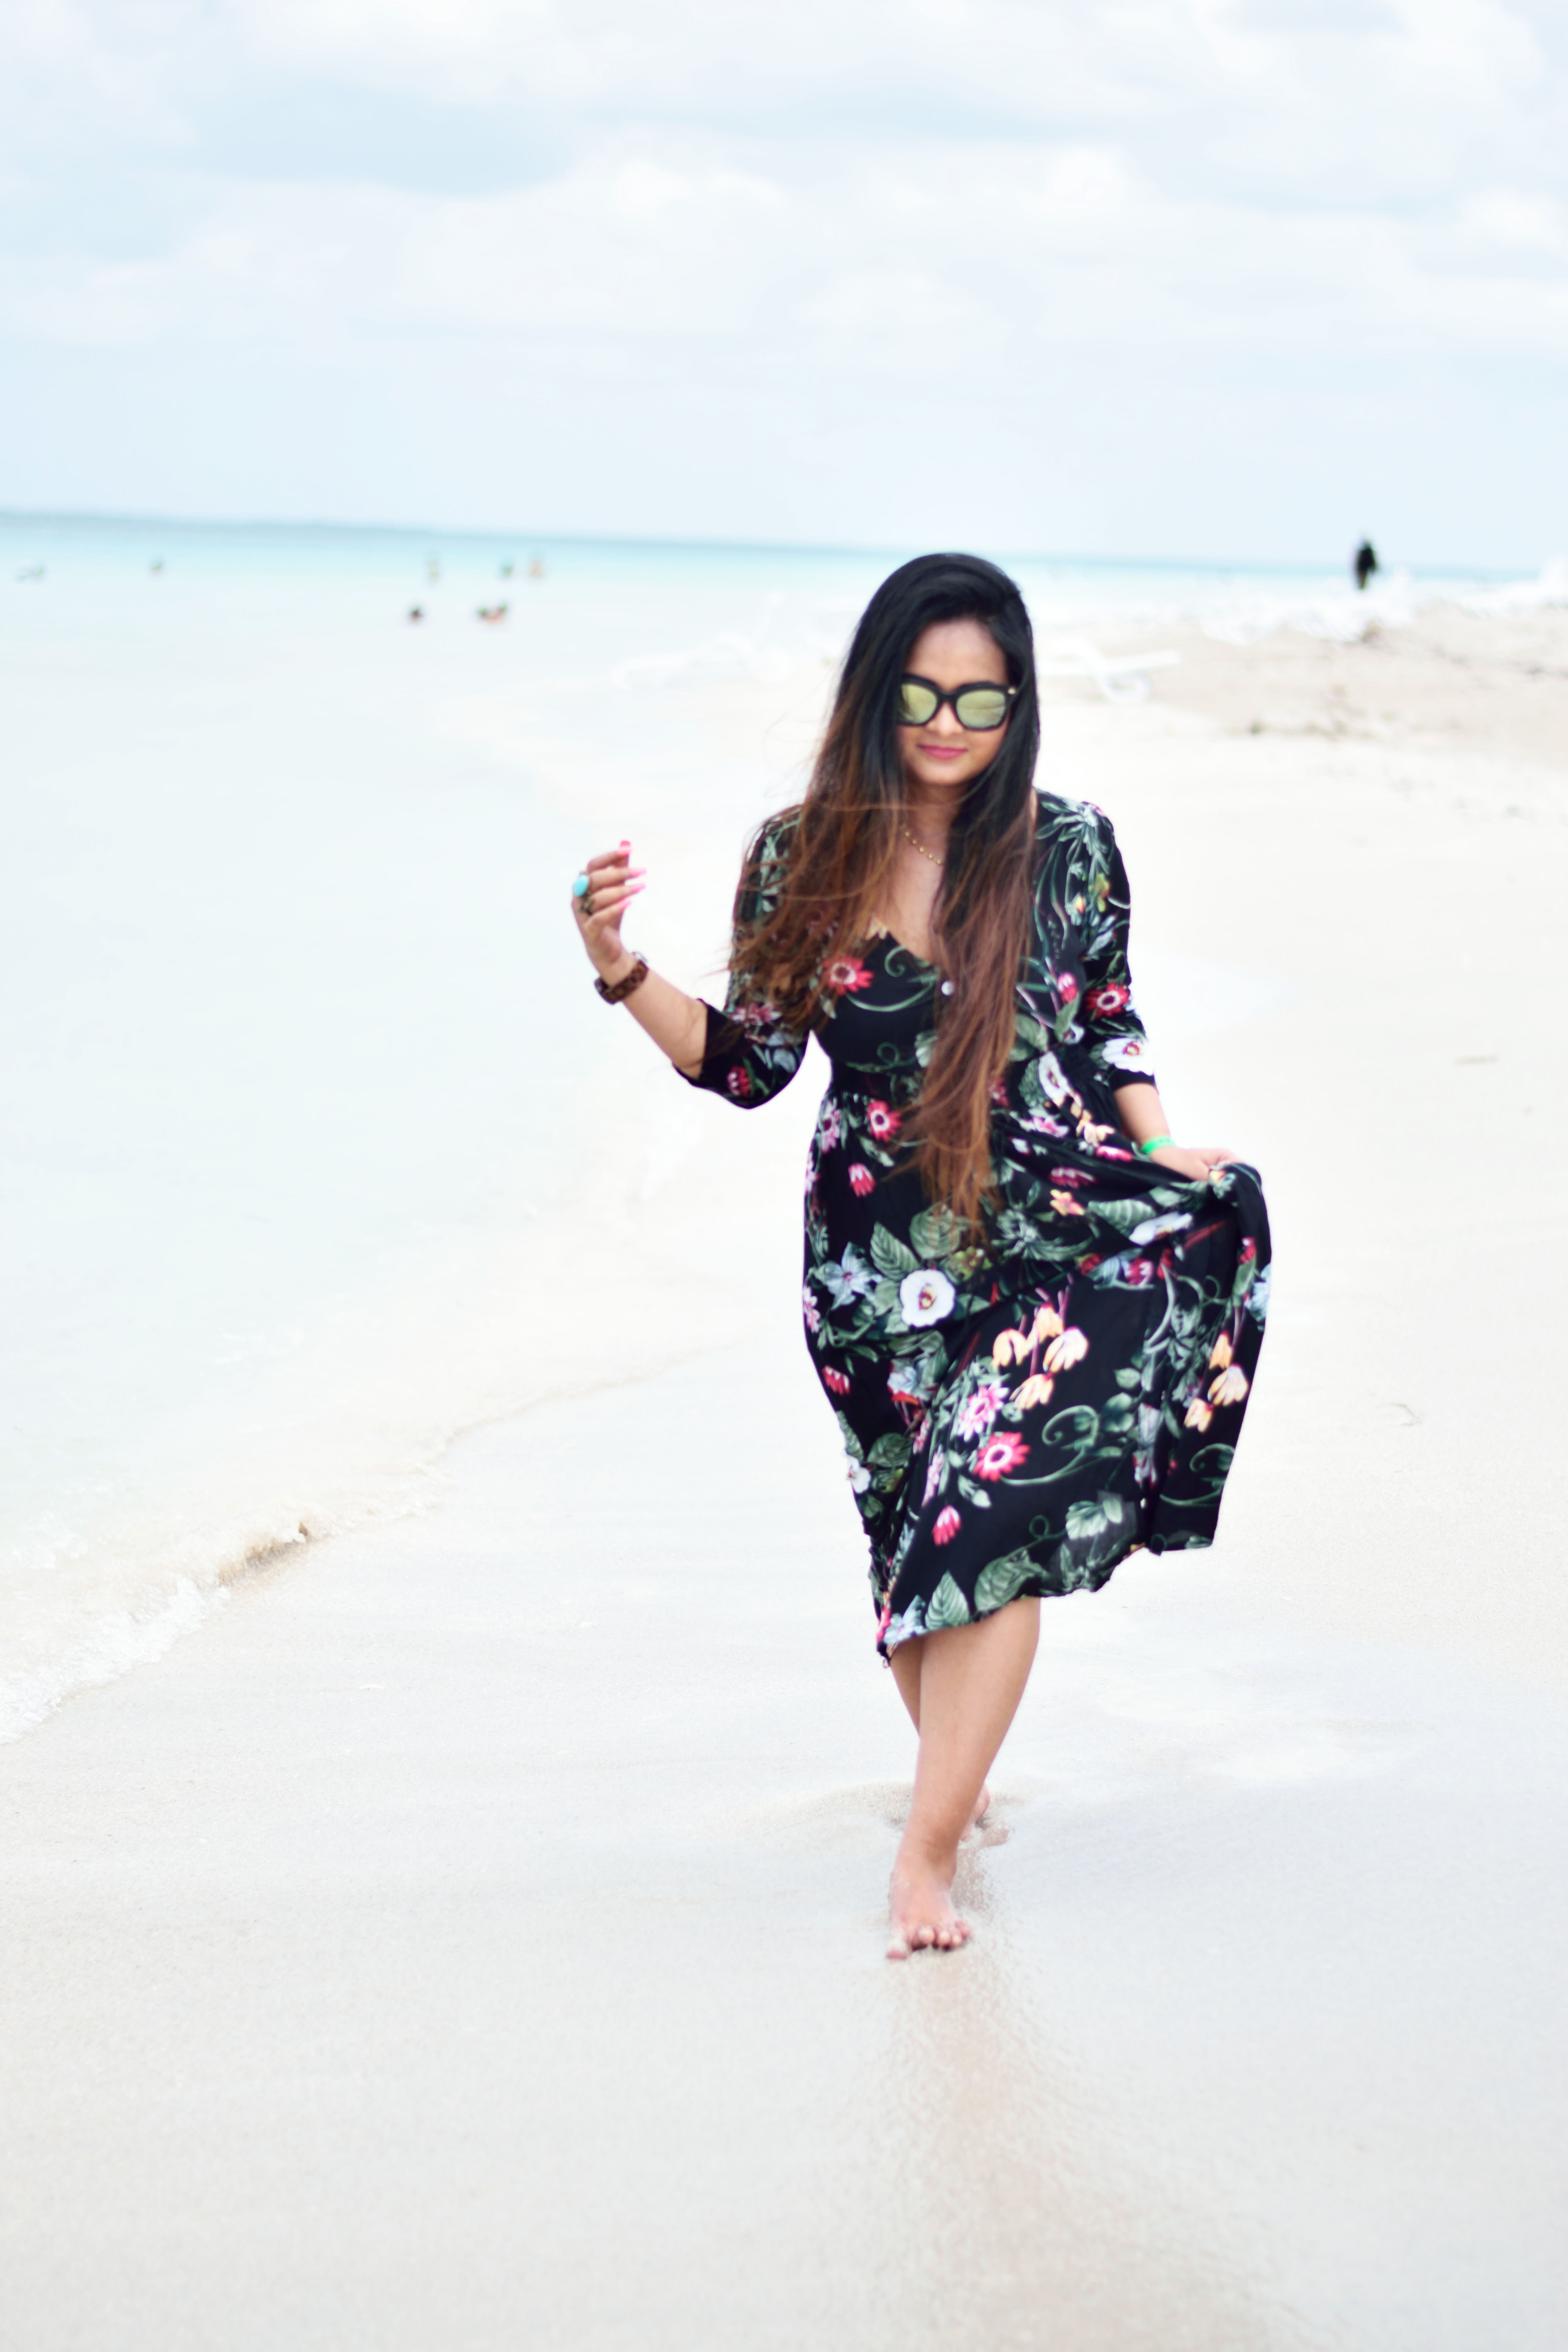 Black Floral Boho Dress from JustFashionNow - The Perfect Boho Look